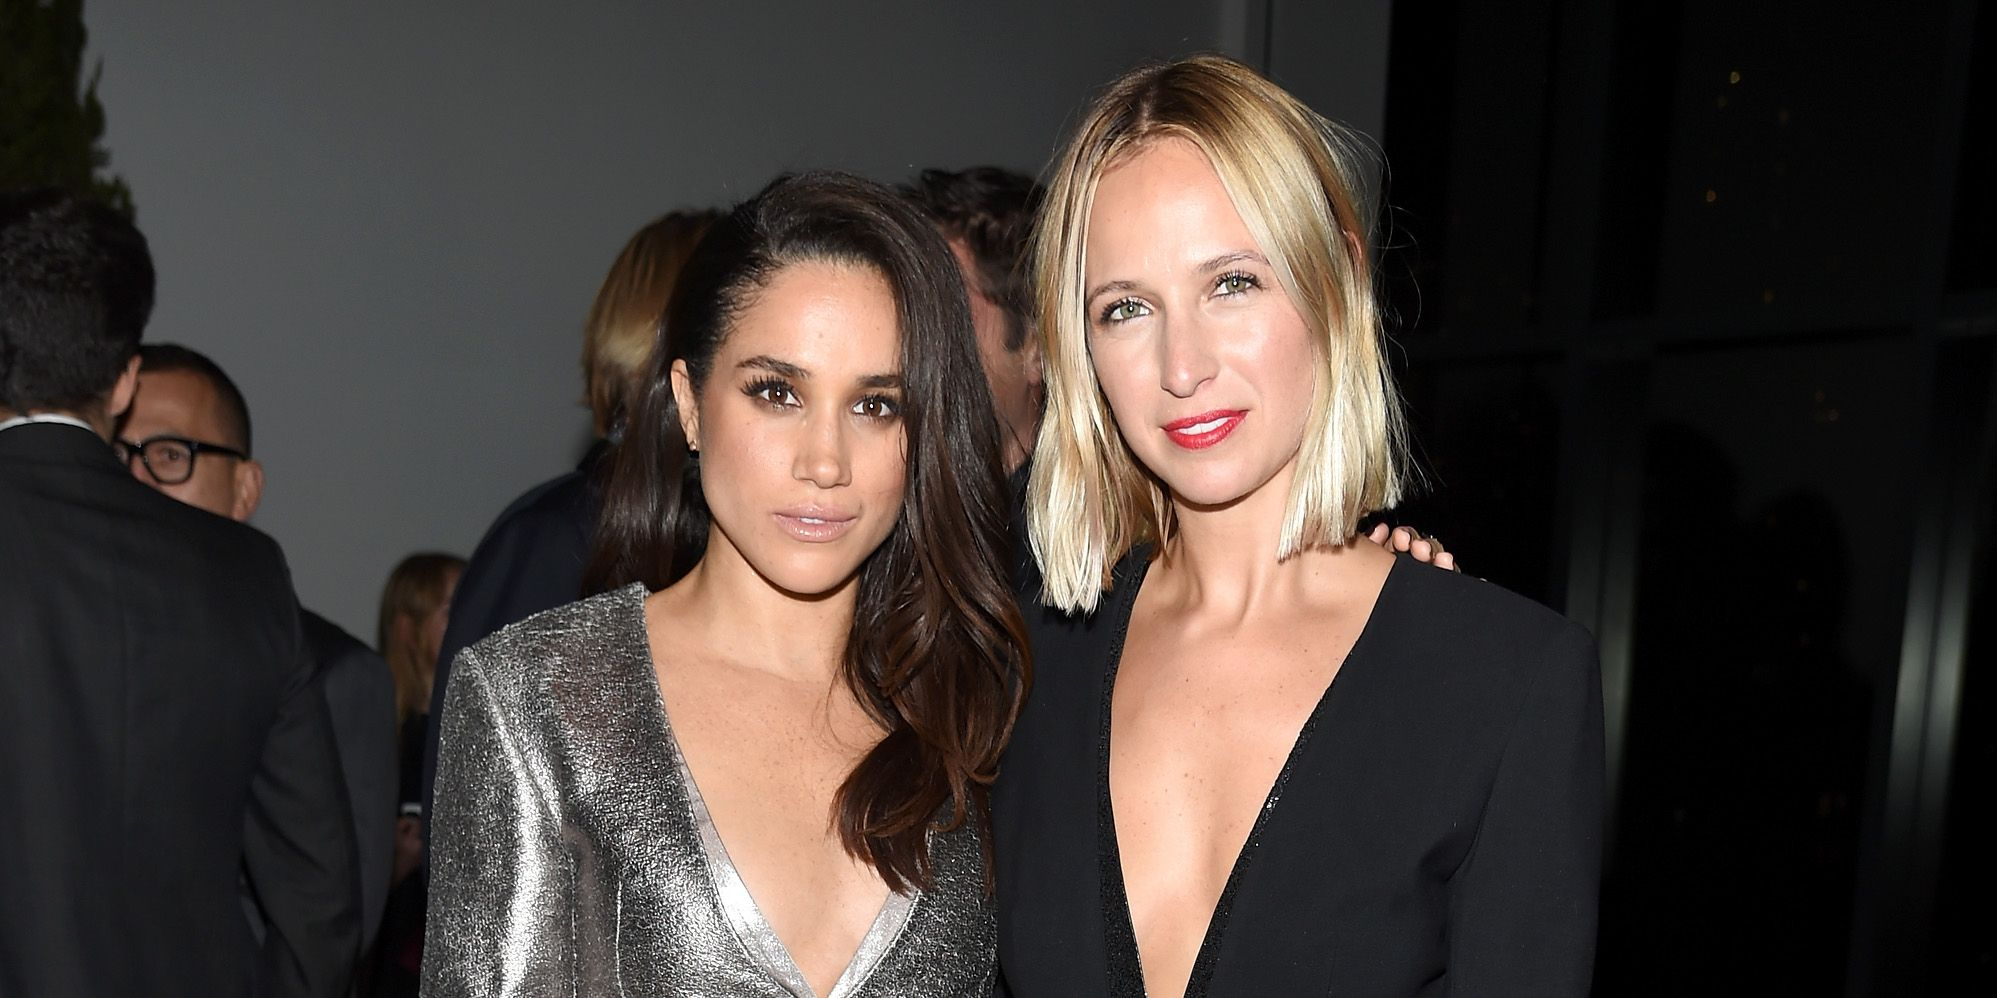 Misha Nonoo, One of Meghan Markle's Closest Friends, Is Engaged